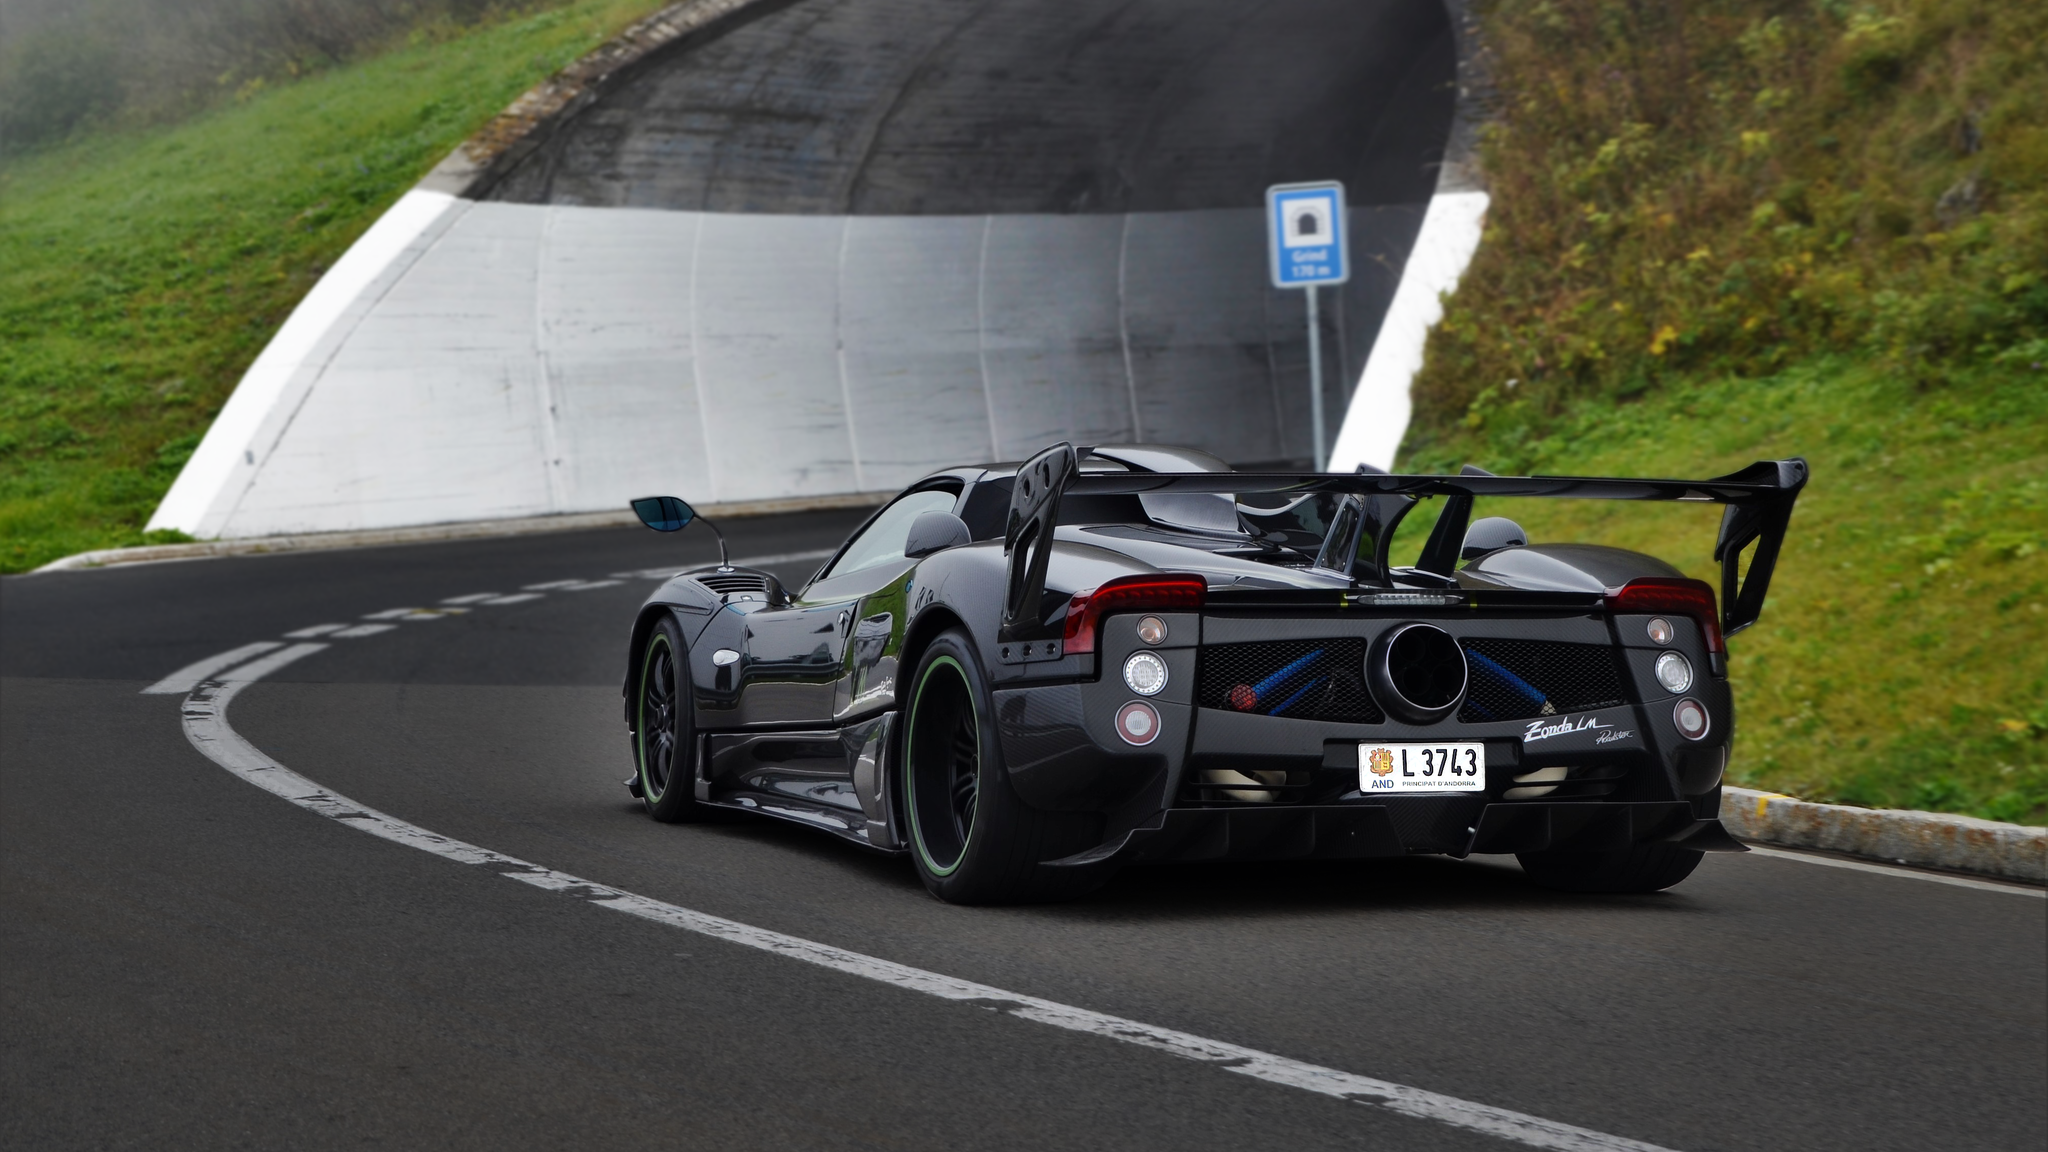 Pagani Zonda LM Roadster - L-3743 (AND)